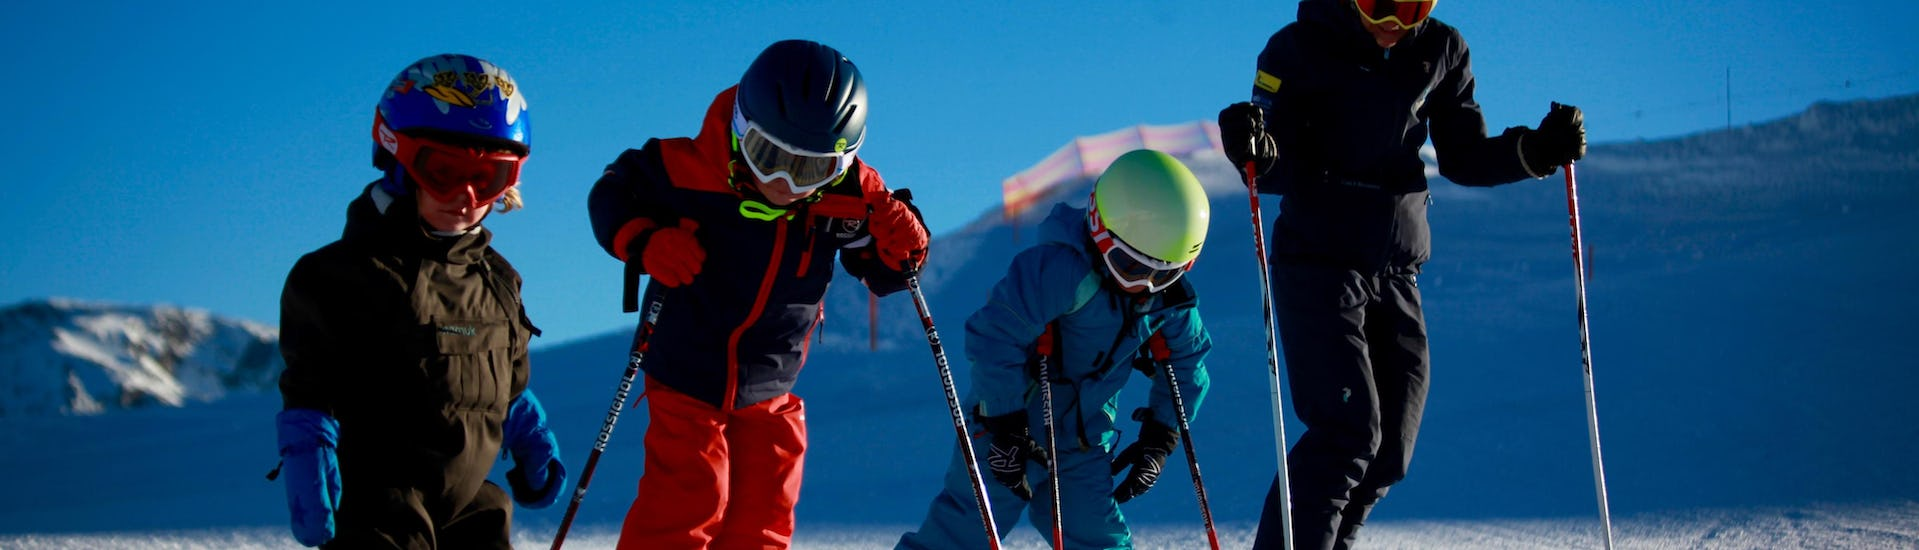 Ski Instructor Private for Kids - Full Day - All Ages